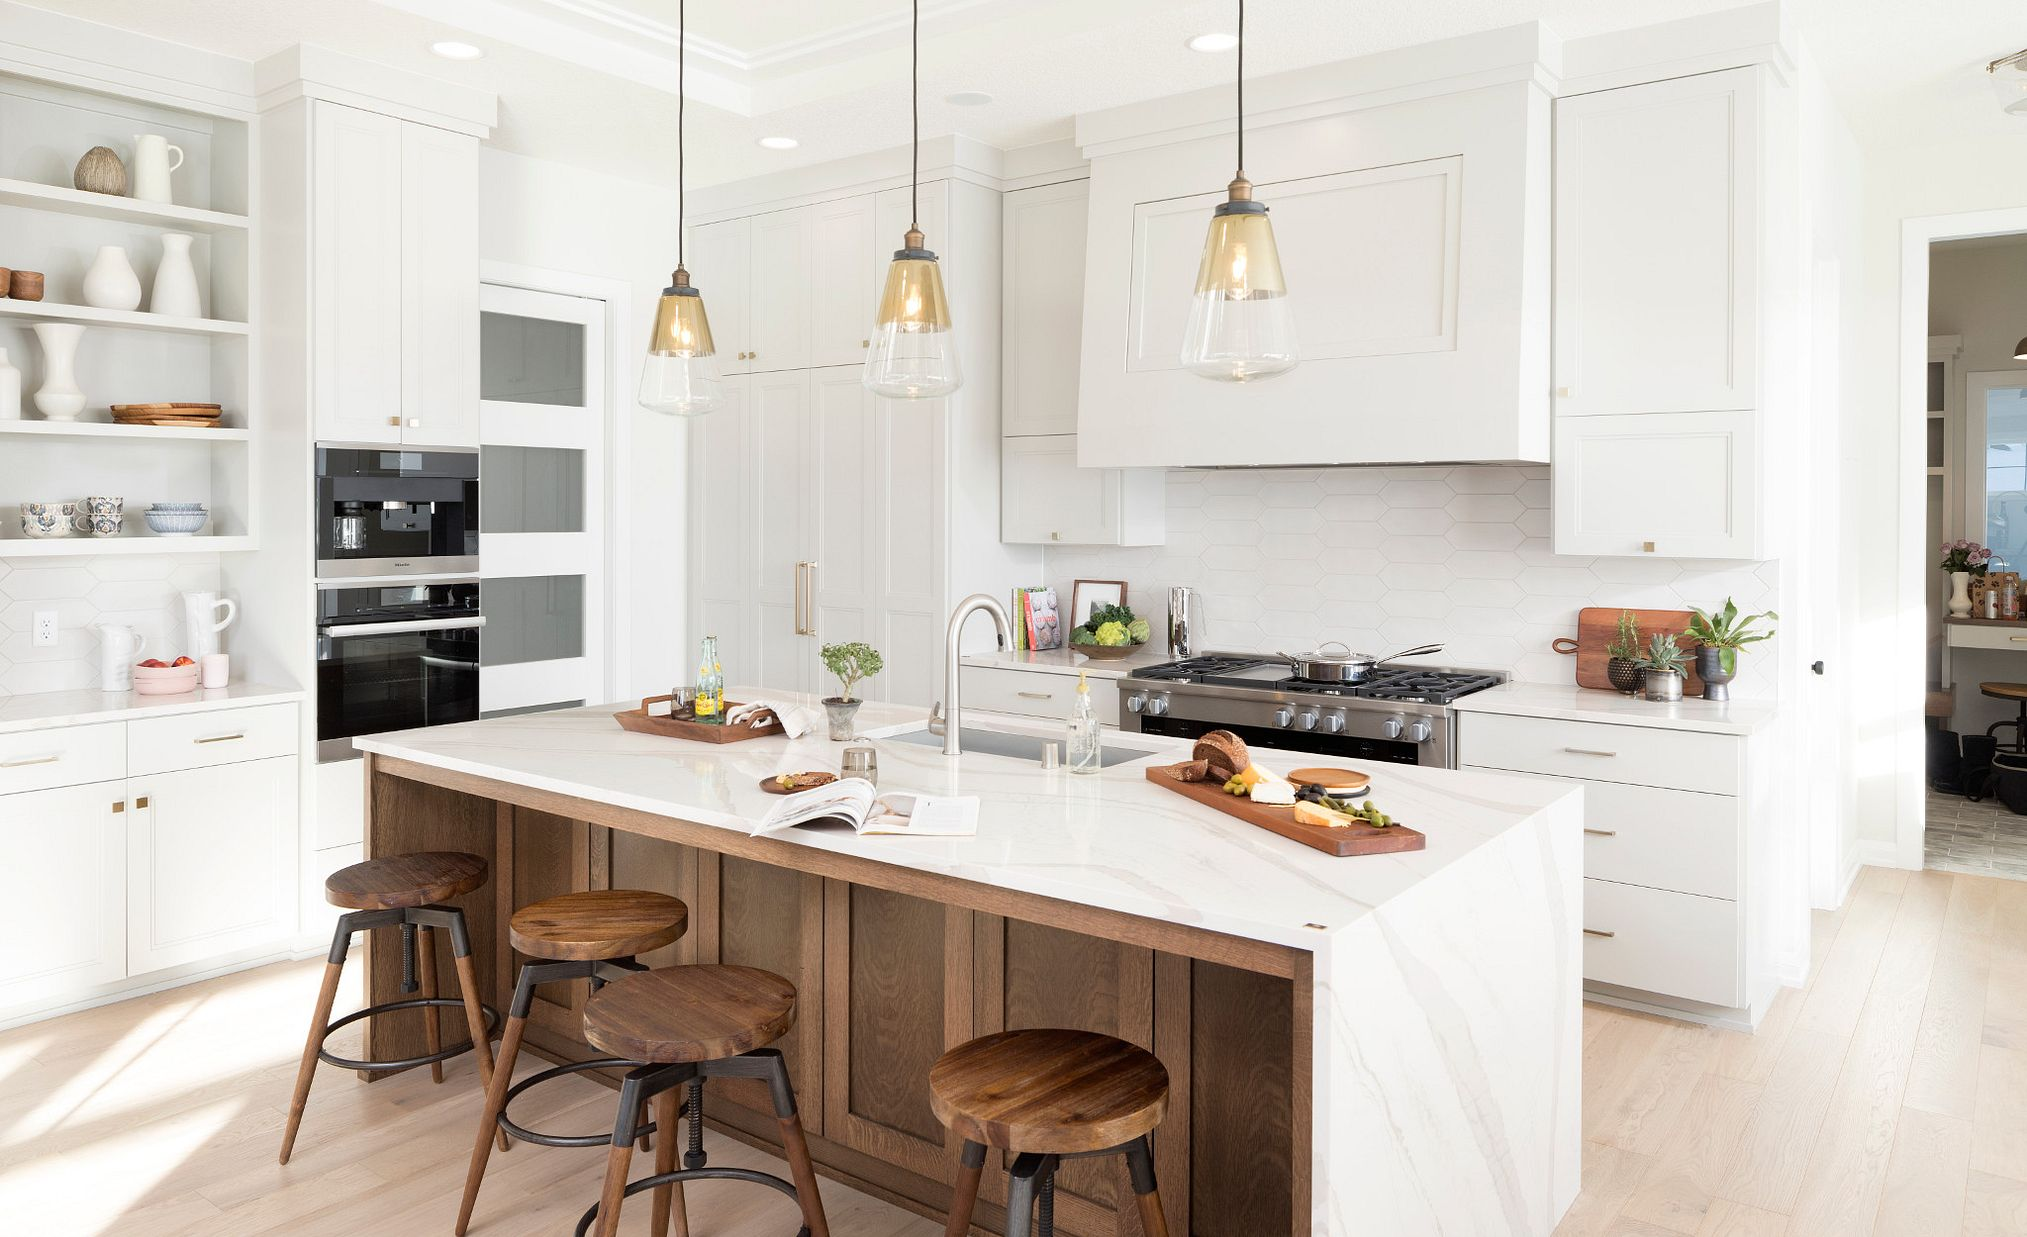 White marble-look quartz countertops in a kitchen with white and medium wood toned cabinets.